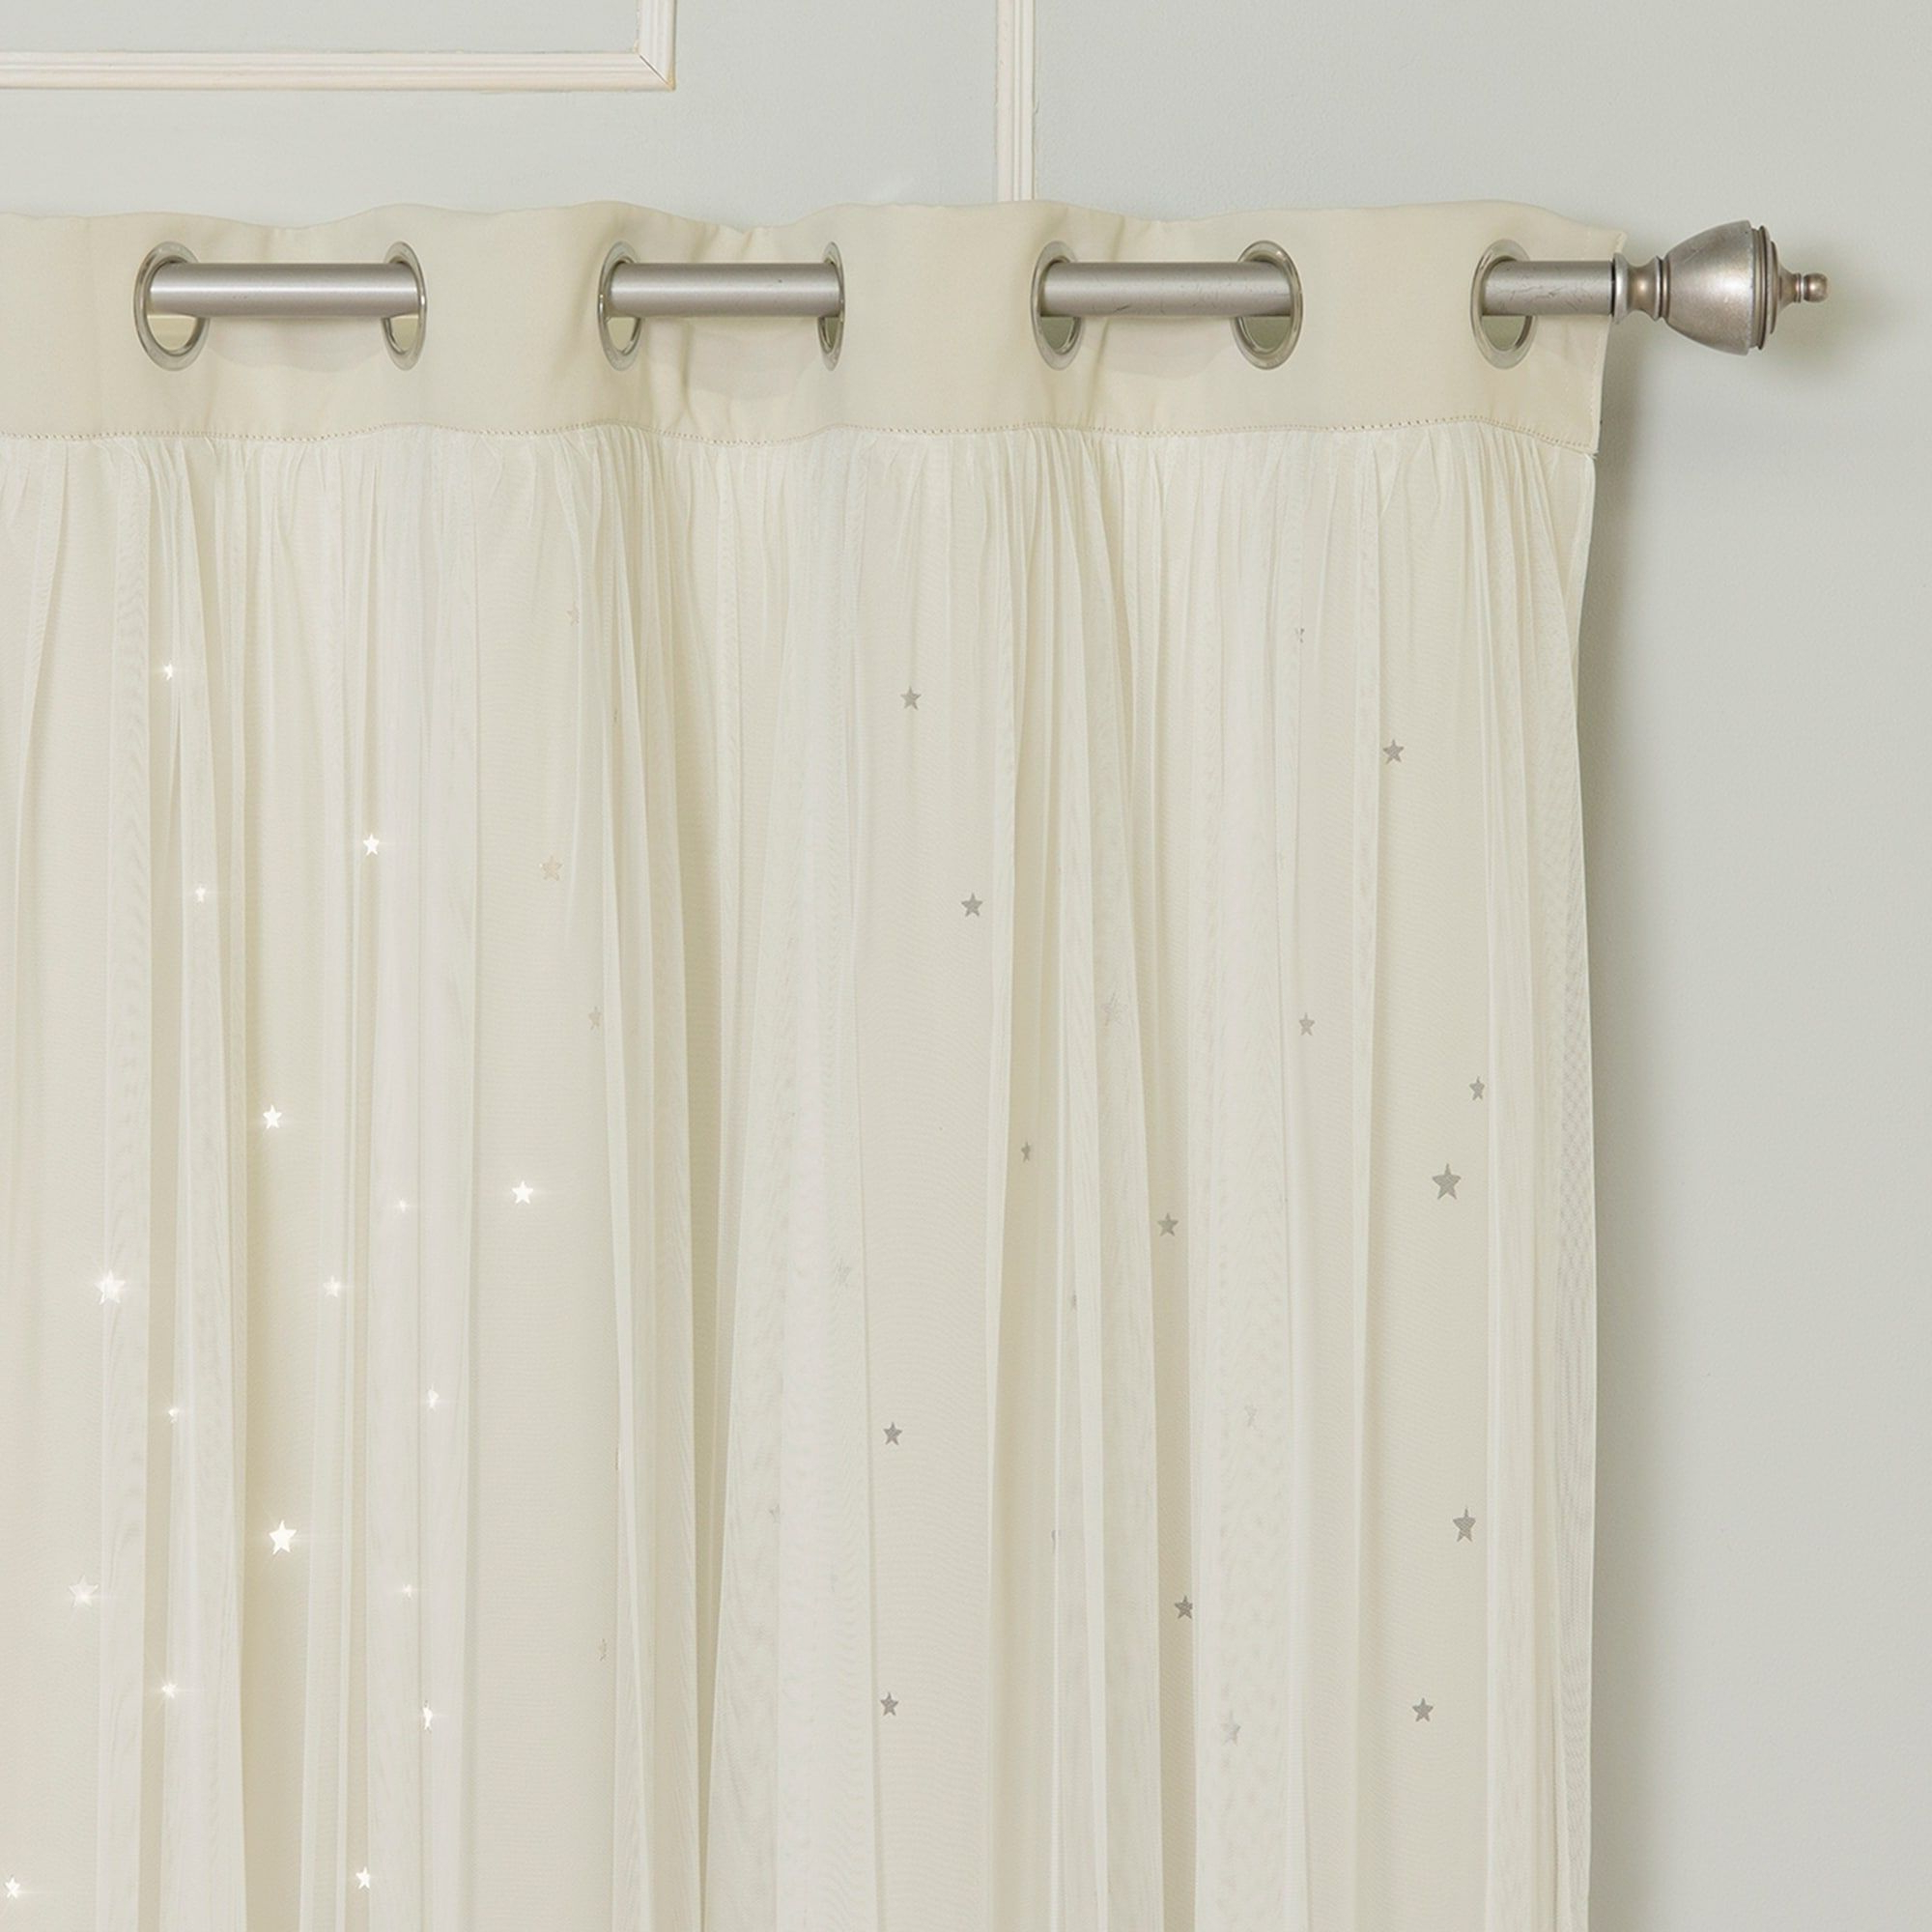 Aurora Home Star Punch Tulle Overlay Blackout Curtains – N/a Pertaining To Recent Star Punch Tulle Overlay Blackout Curtain Panel Pairs (View 8 of 20)